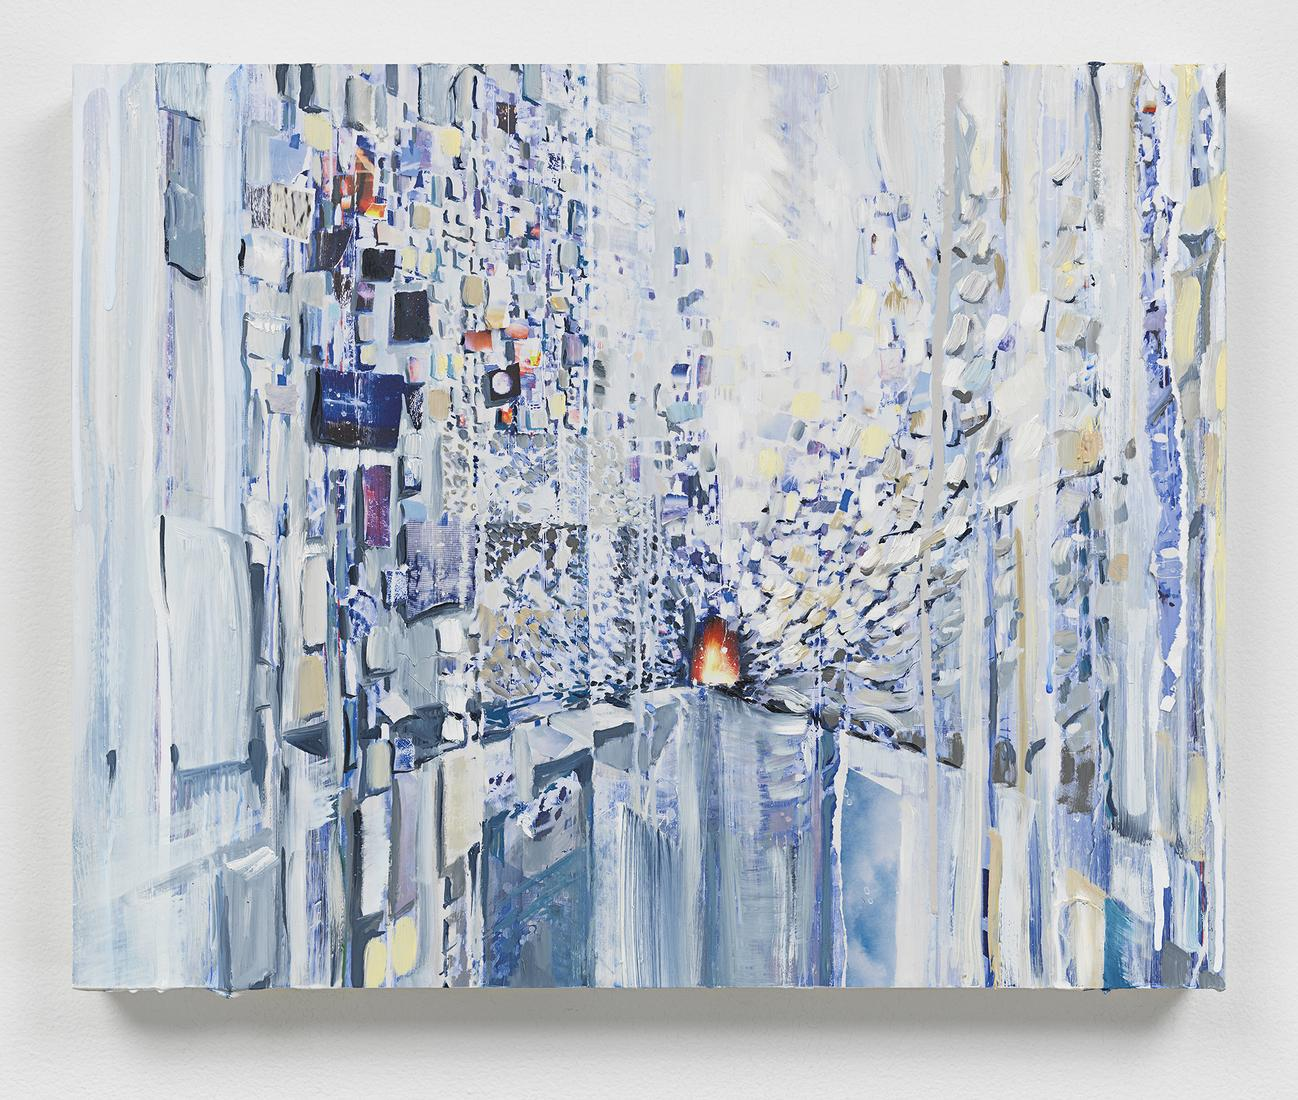 This is an image of Sarah Sze's painting called Th...